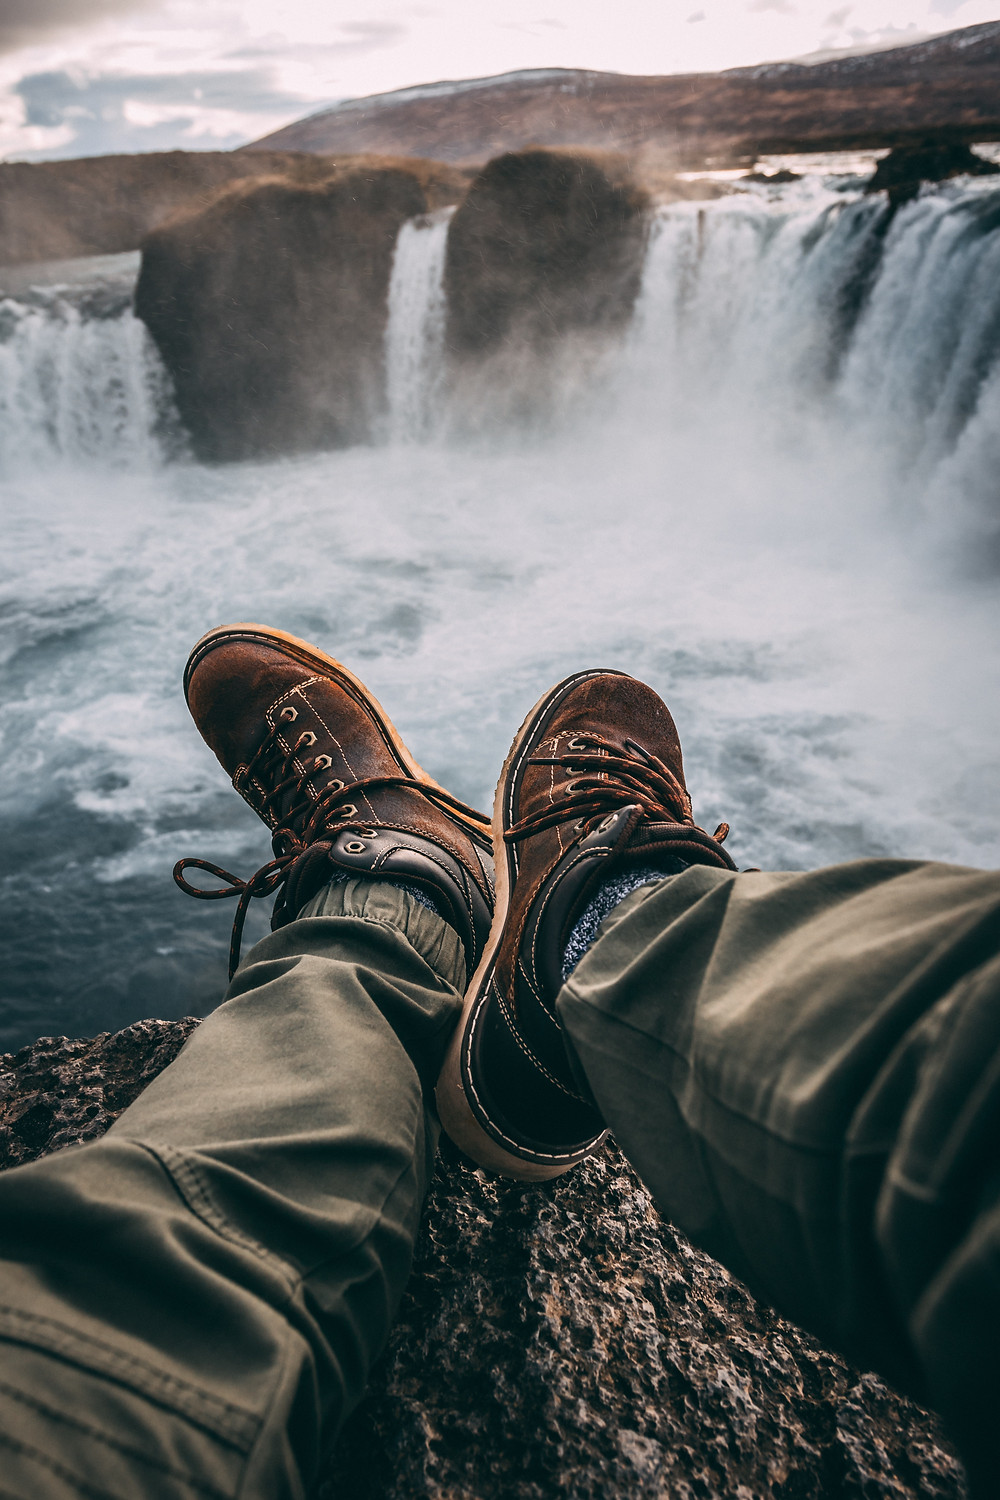 Man sits near the mist of a large, multi-stream converging waterfall wearing dressy leather shoes and dark green khaki pants